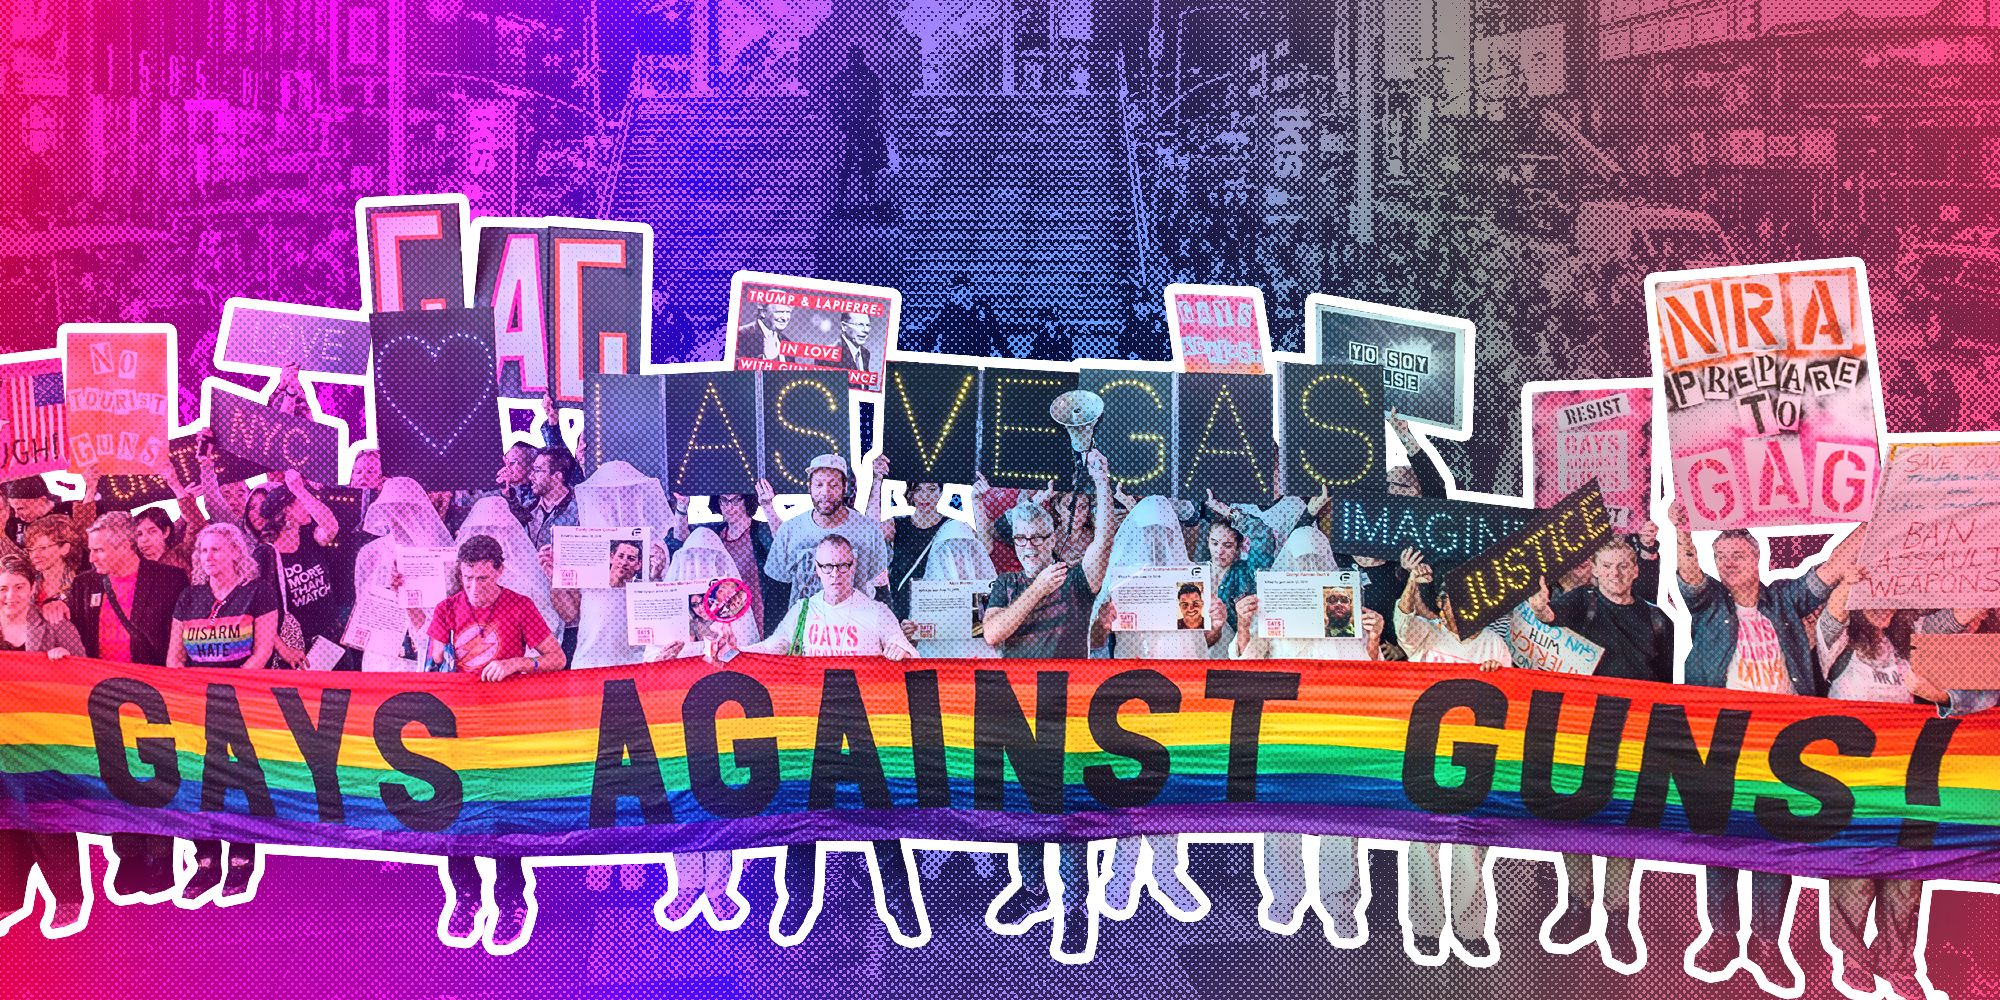 Gays Against Gunsorganized a protest march in New York on Oct. 2, 2017, in the wake of the Las Vegas massacre. The grou